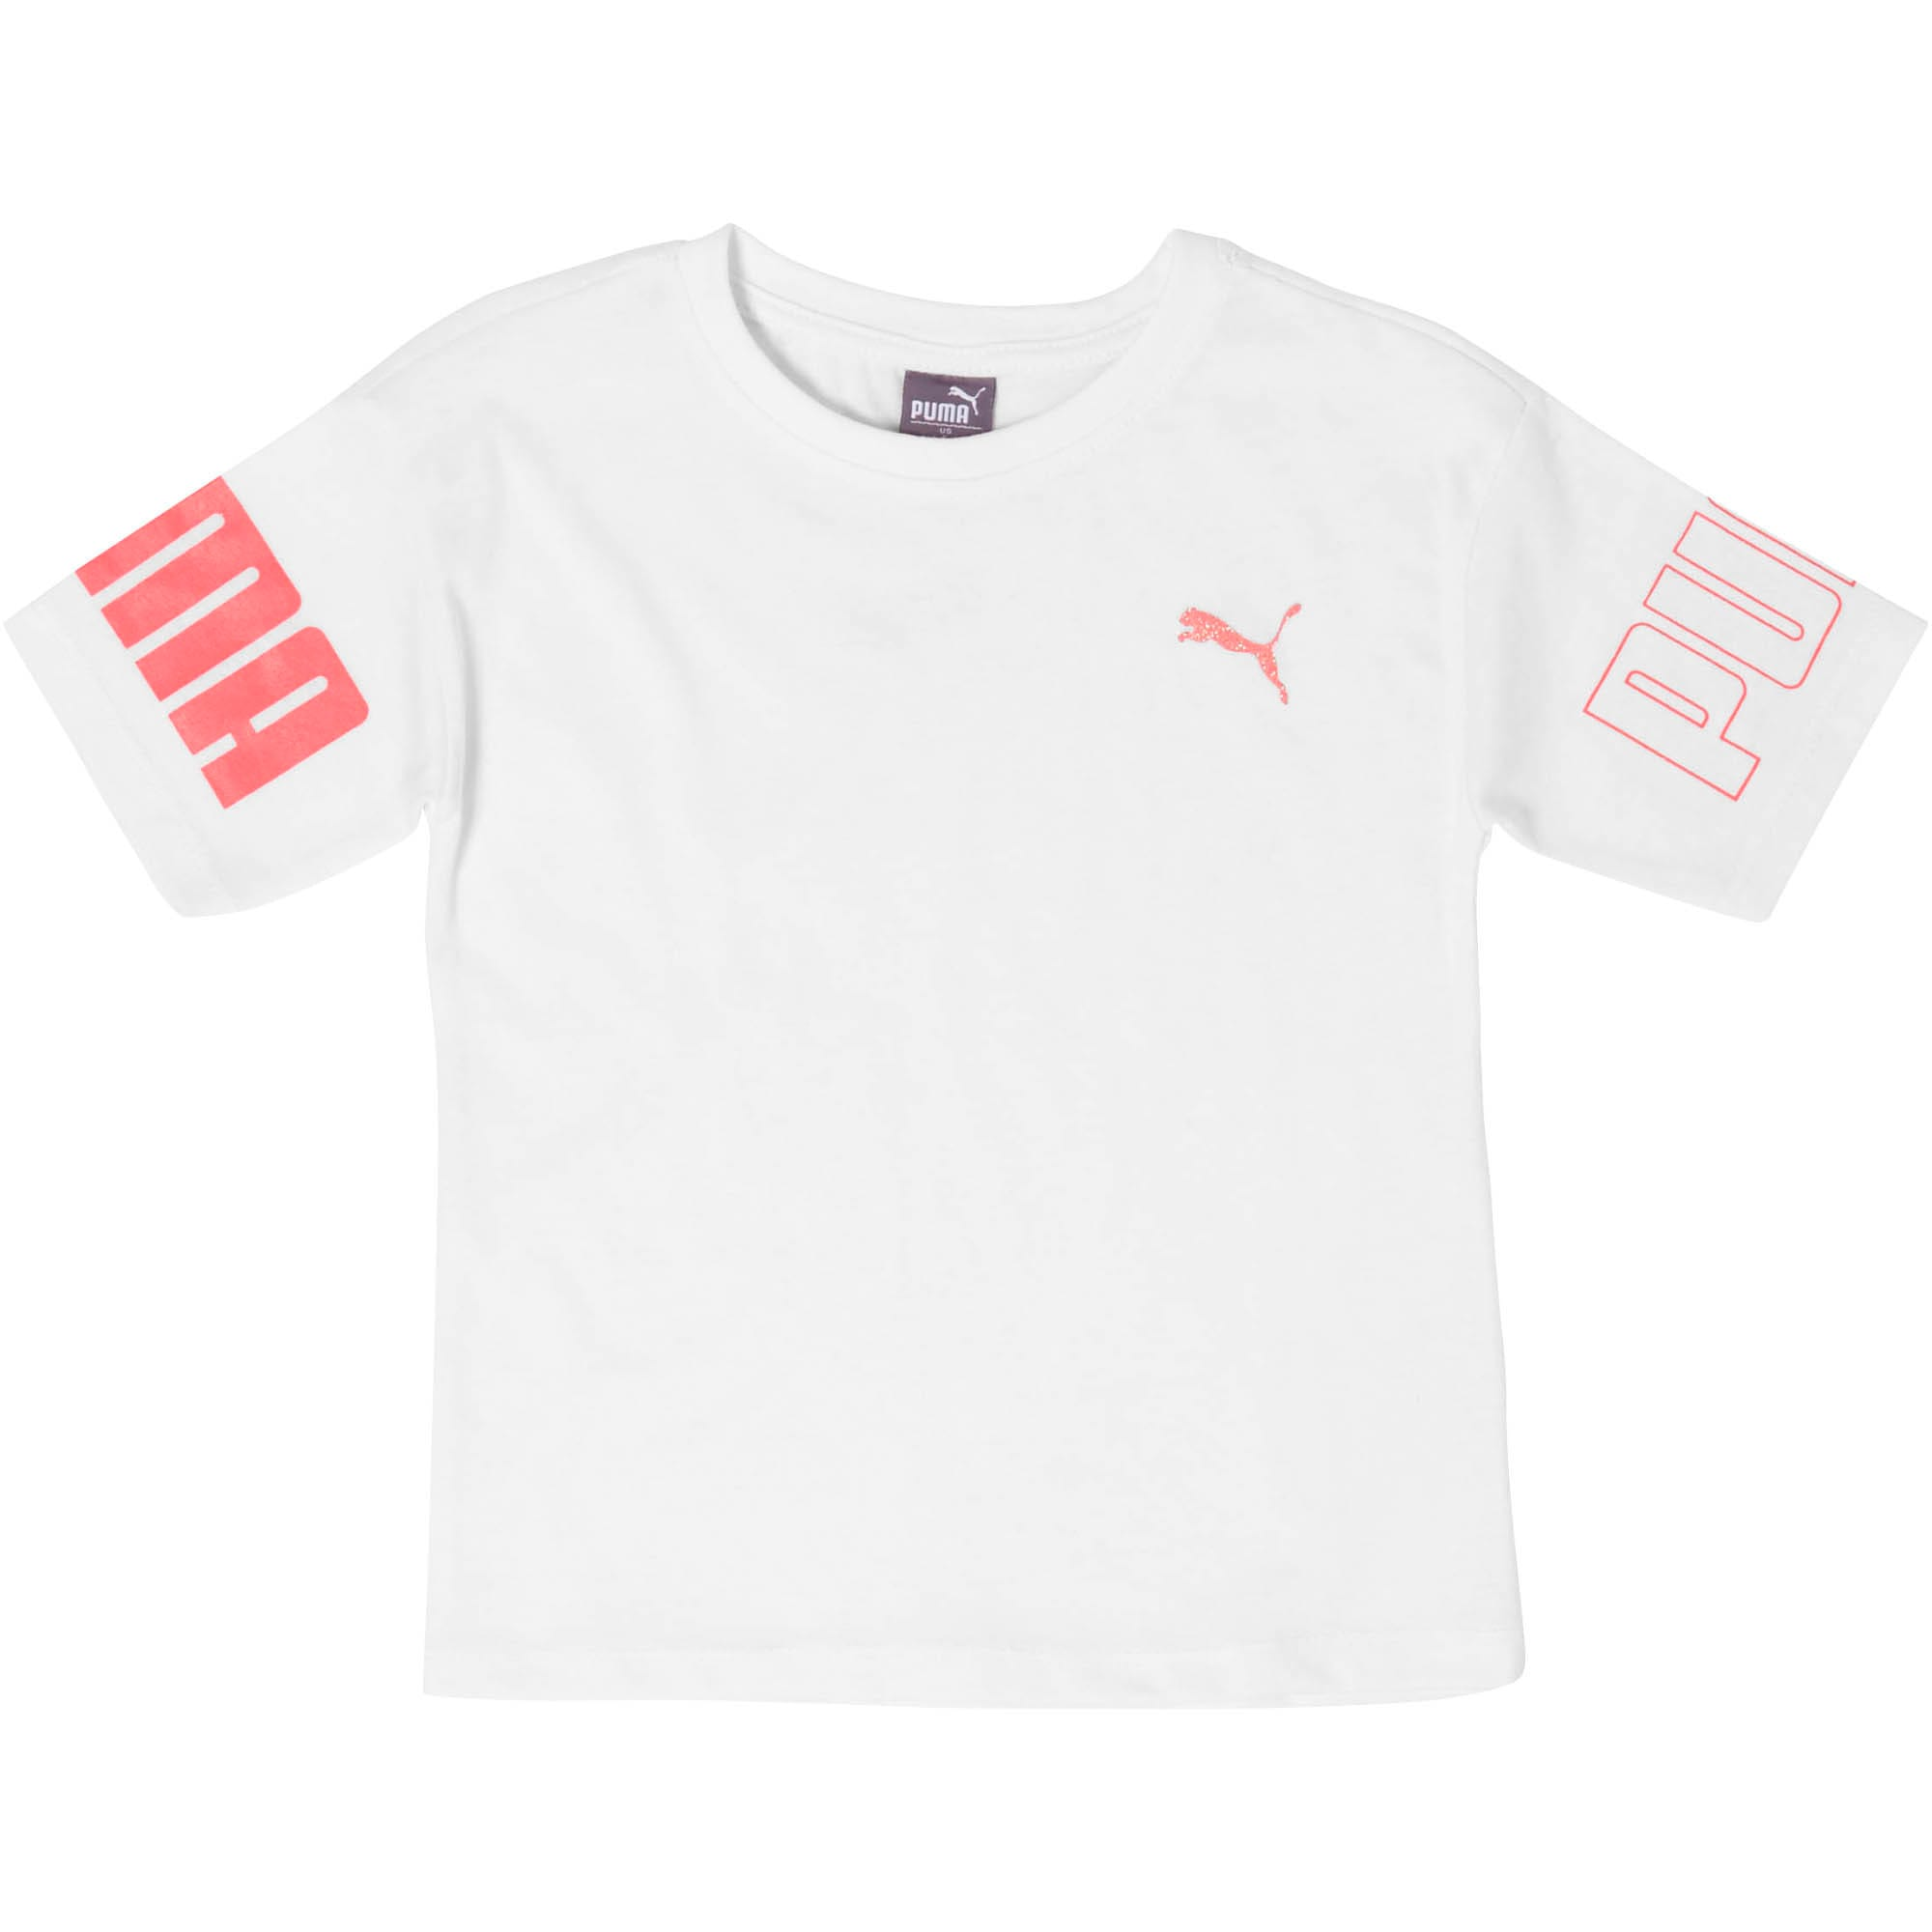 Thumbnail 1 of Little Kids' Cotton Jersey Oversized Tee, PUMA WHITE, medium